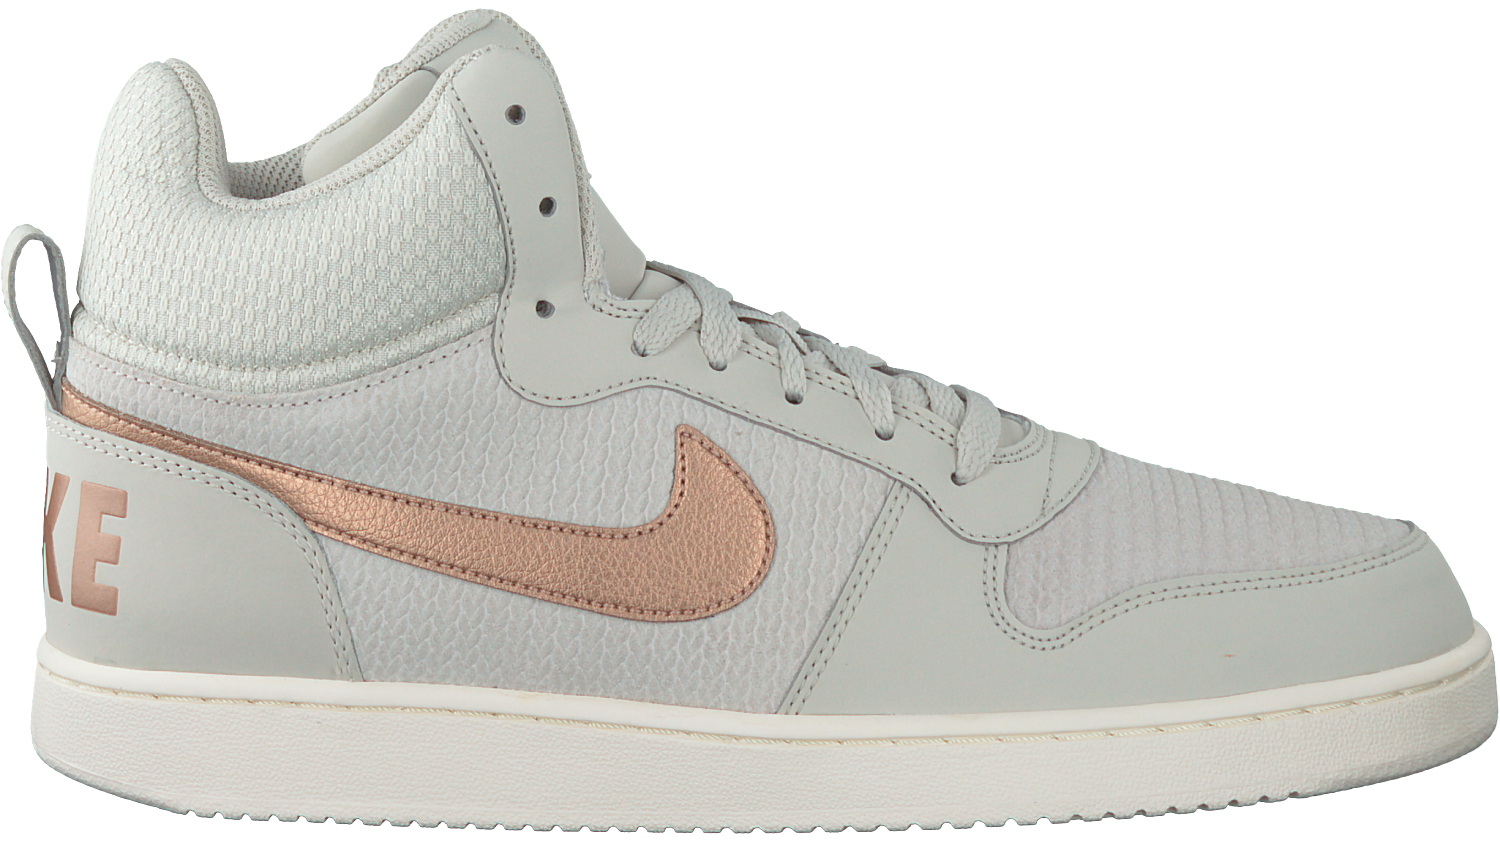 White NIKE Sneakers COURT BOROUGH MID PREM DAMES - Omoda.com